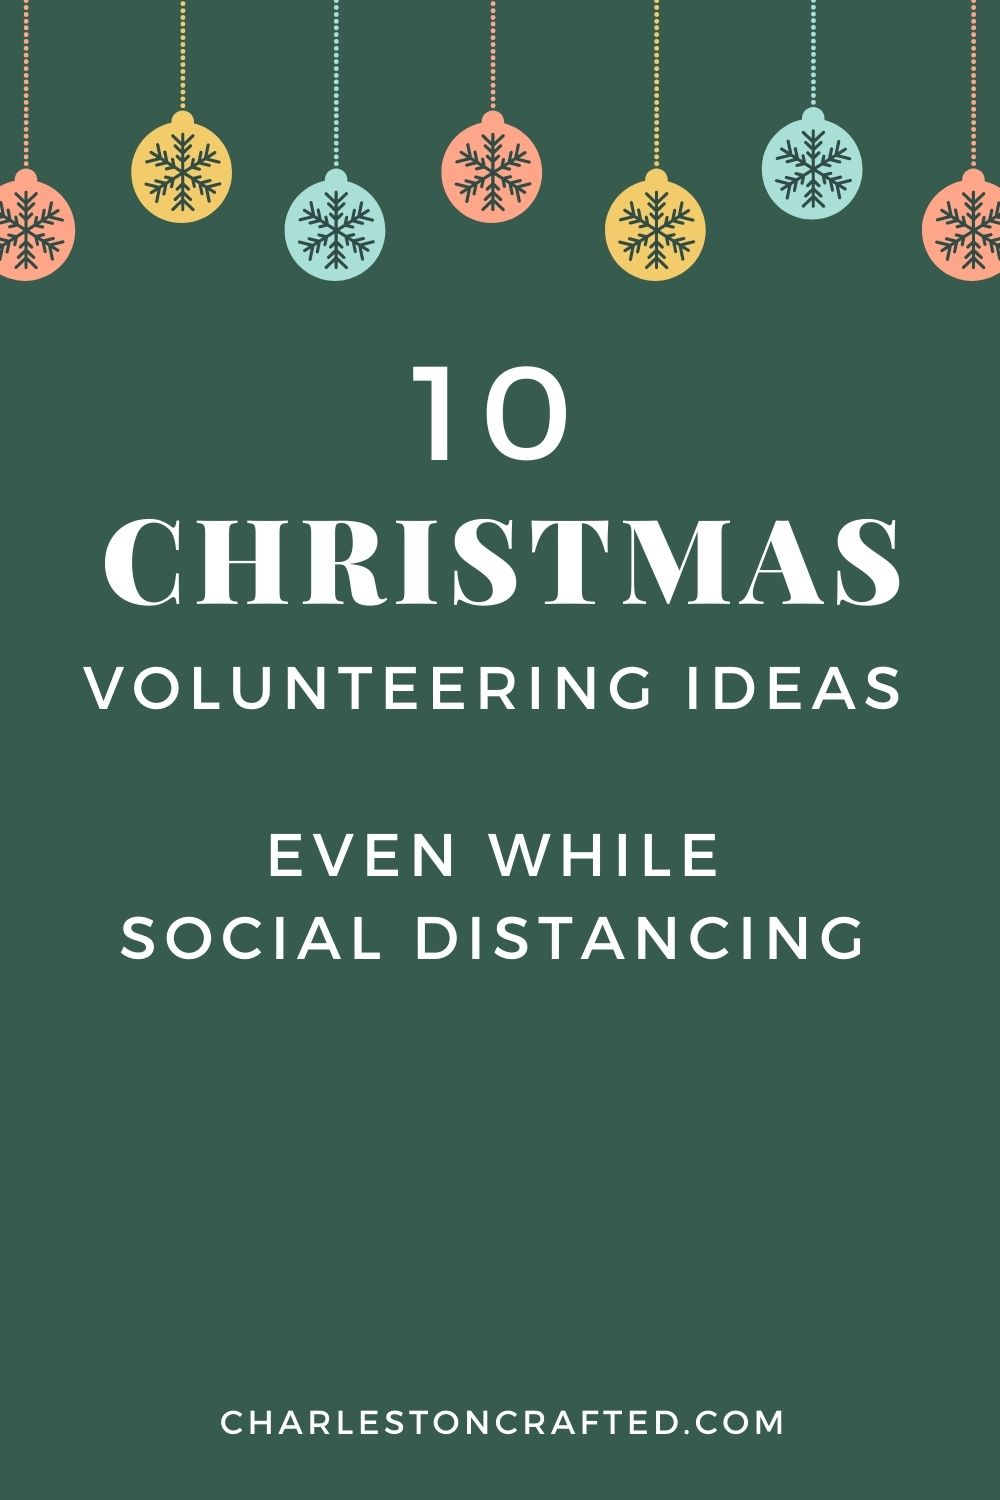 10 Christmas volunteering ideas